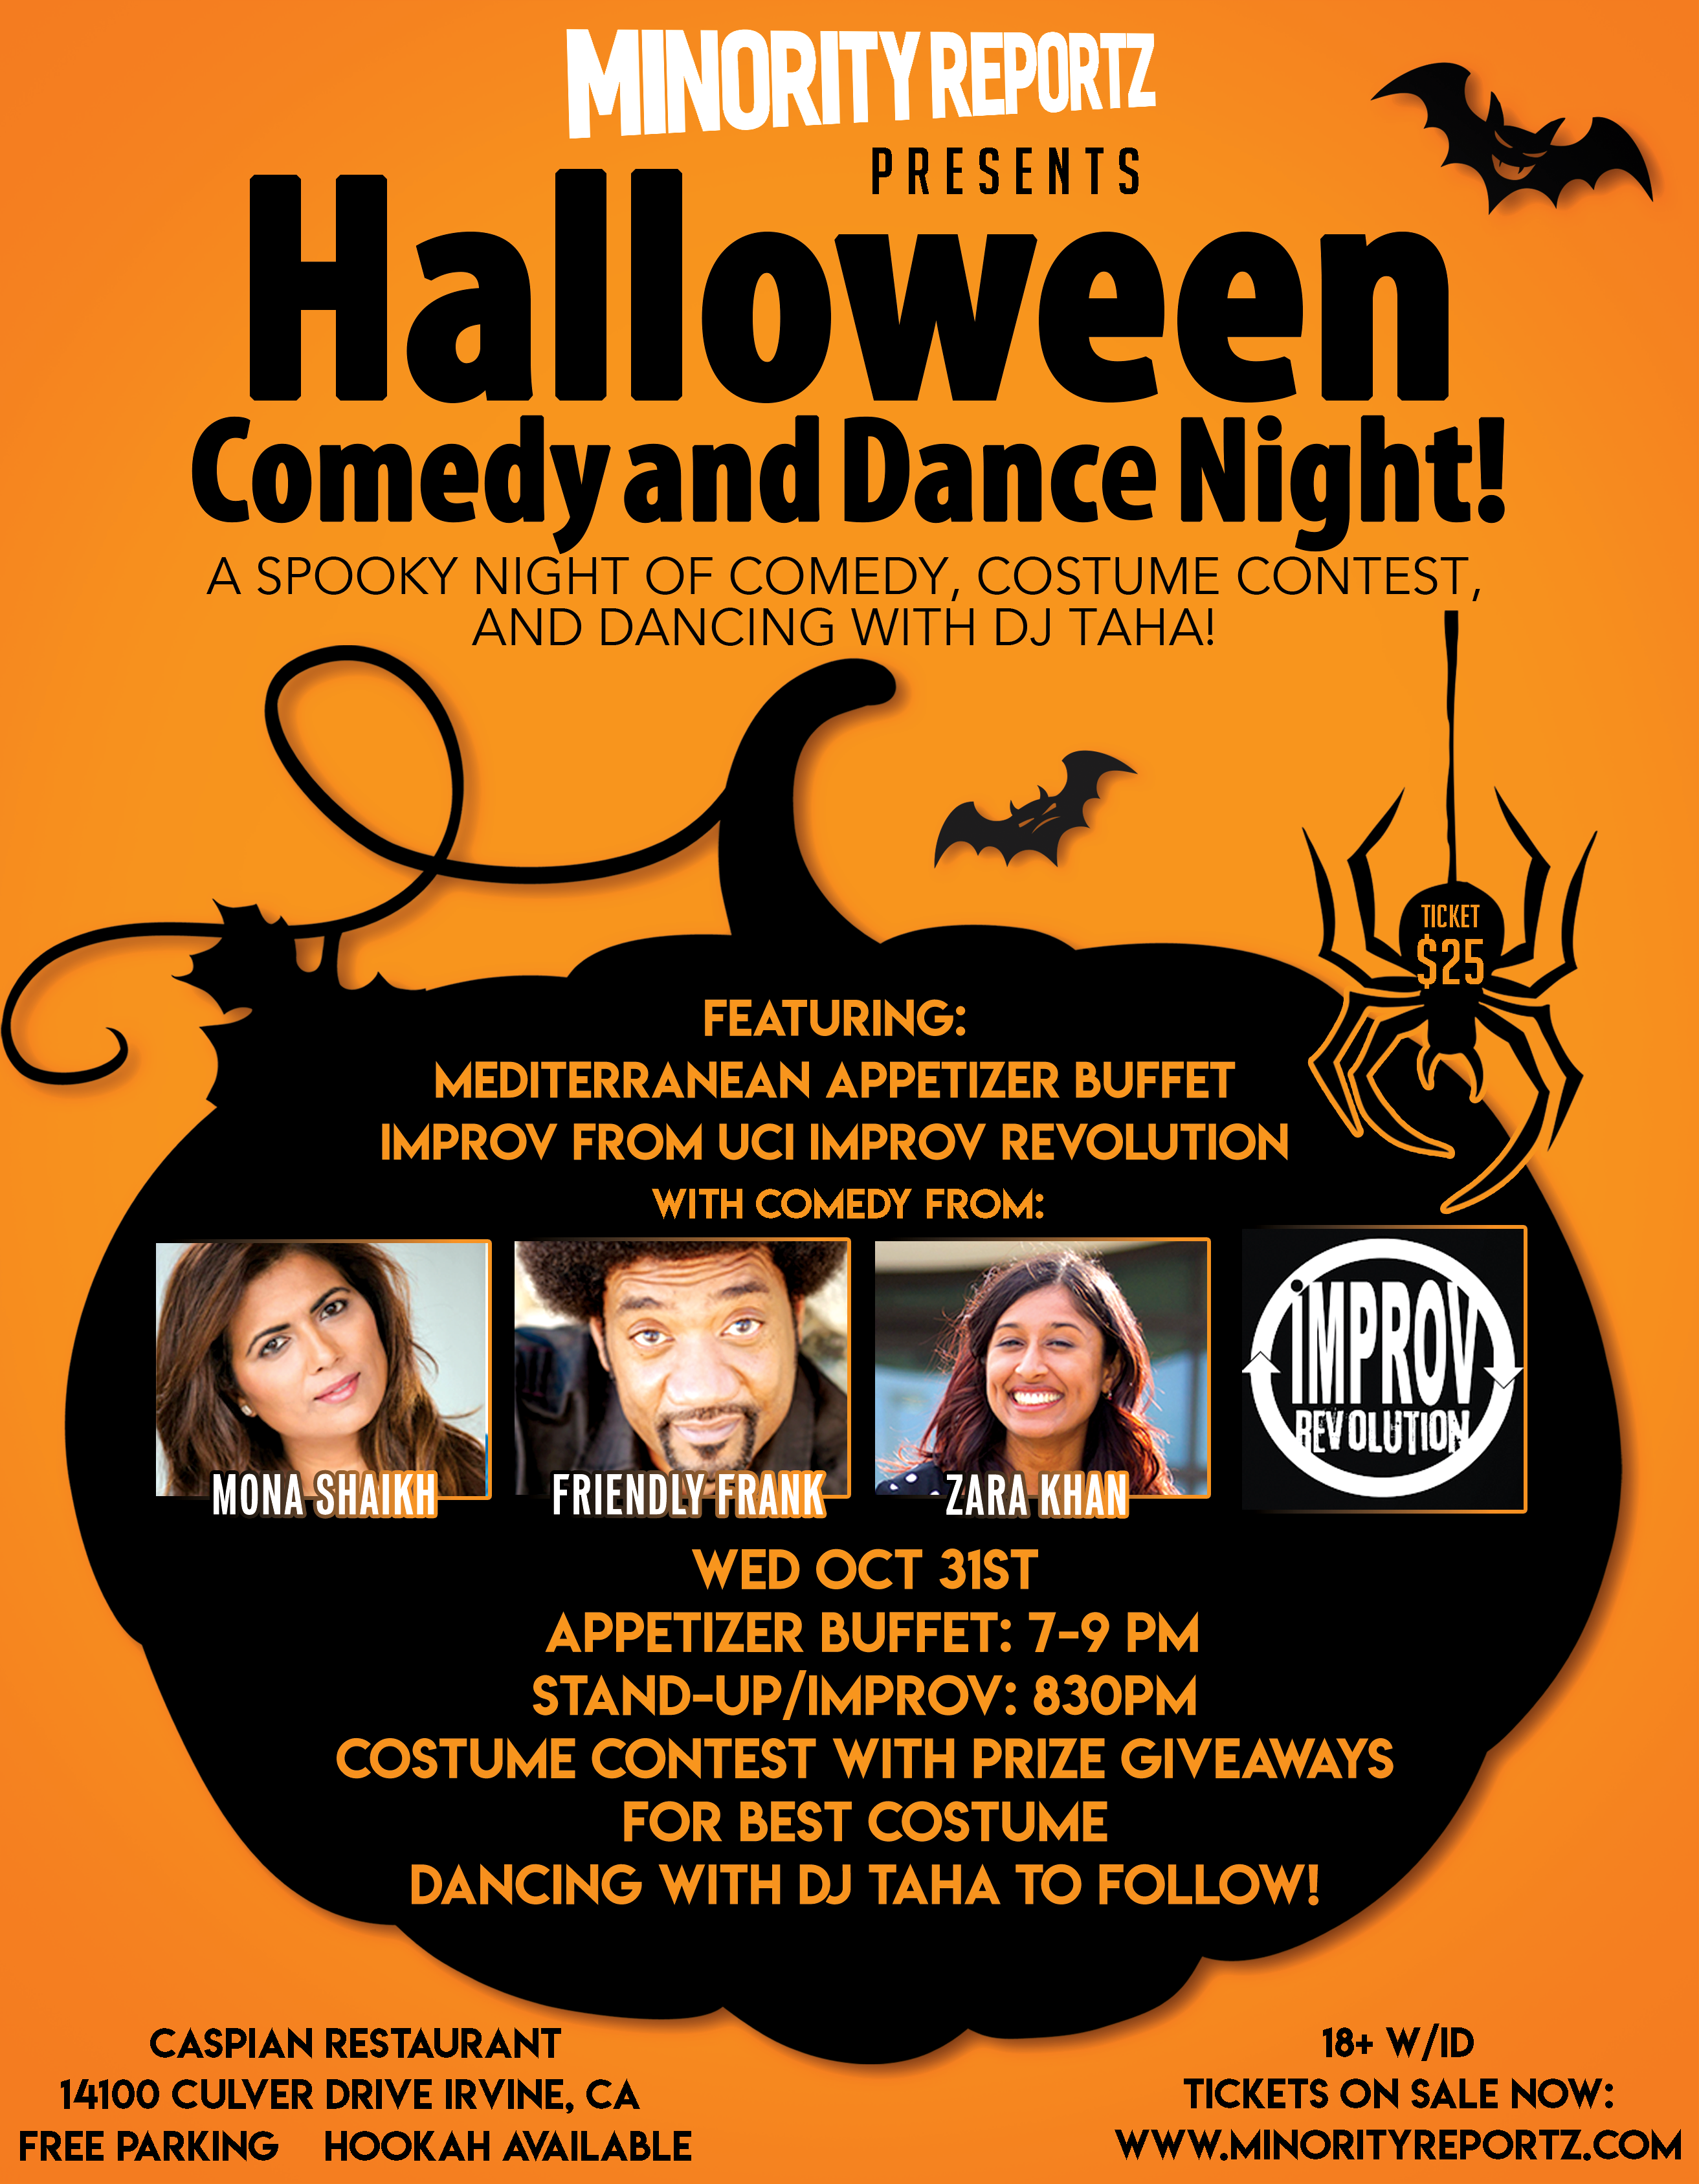 Minority Reportz presents HALLOWEEN COMEDY, COSTUME CONTEST AND DANCE NIGHT! PUT ON YOUR BEST COSTUME TO WIN PRIZES WHILE FEASTING ON DELICIOUS MEDITERRANEAN APPETIZERS, WATCH STAND-UP/IMPROV BY UCI'S IMPROVREVOLUTION, AND DANCE THE NIGHT AWAY WITH DJ TAH